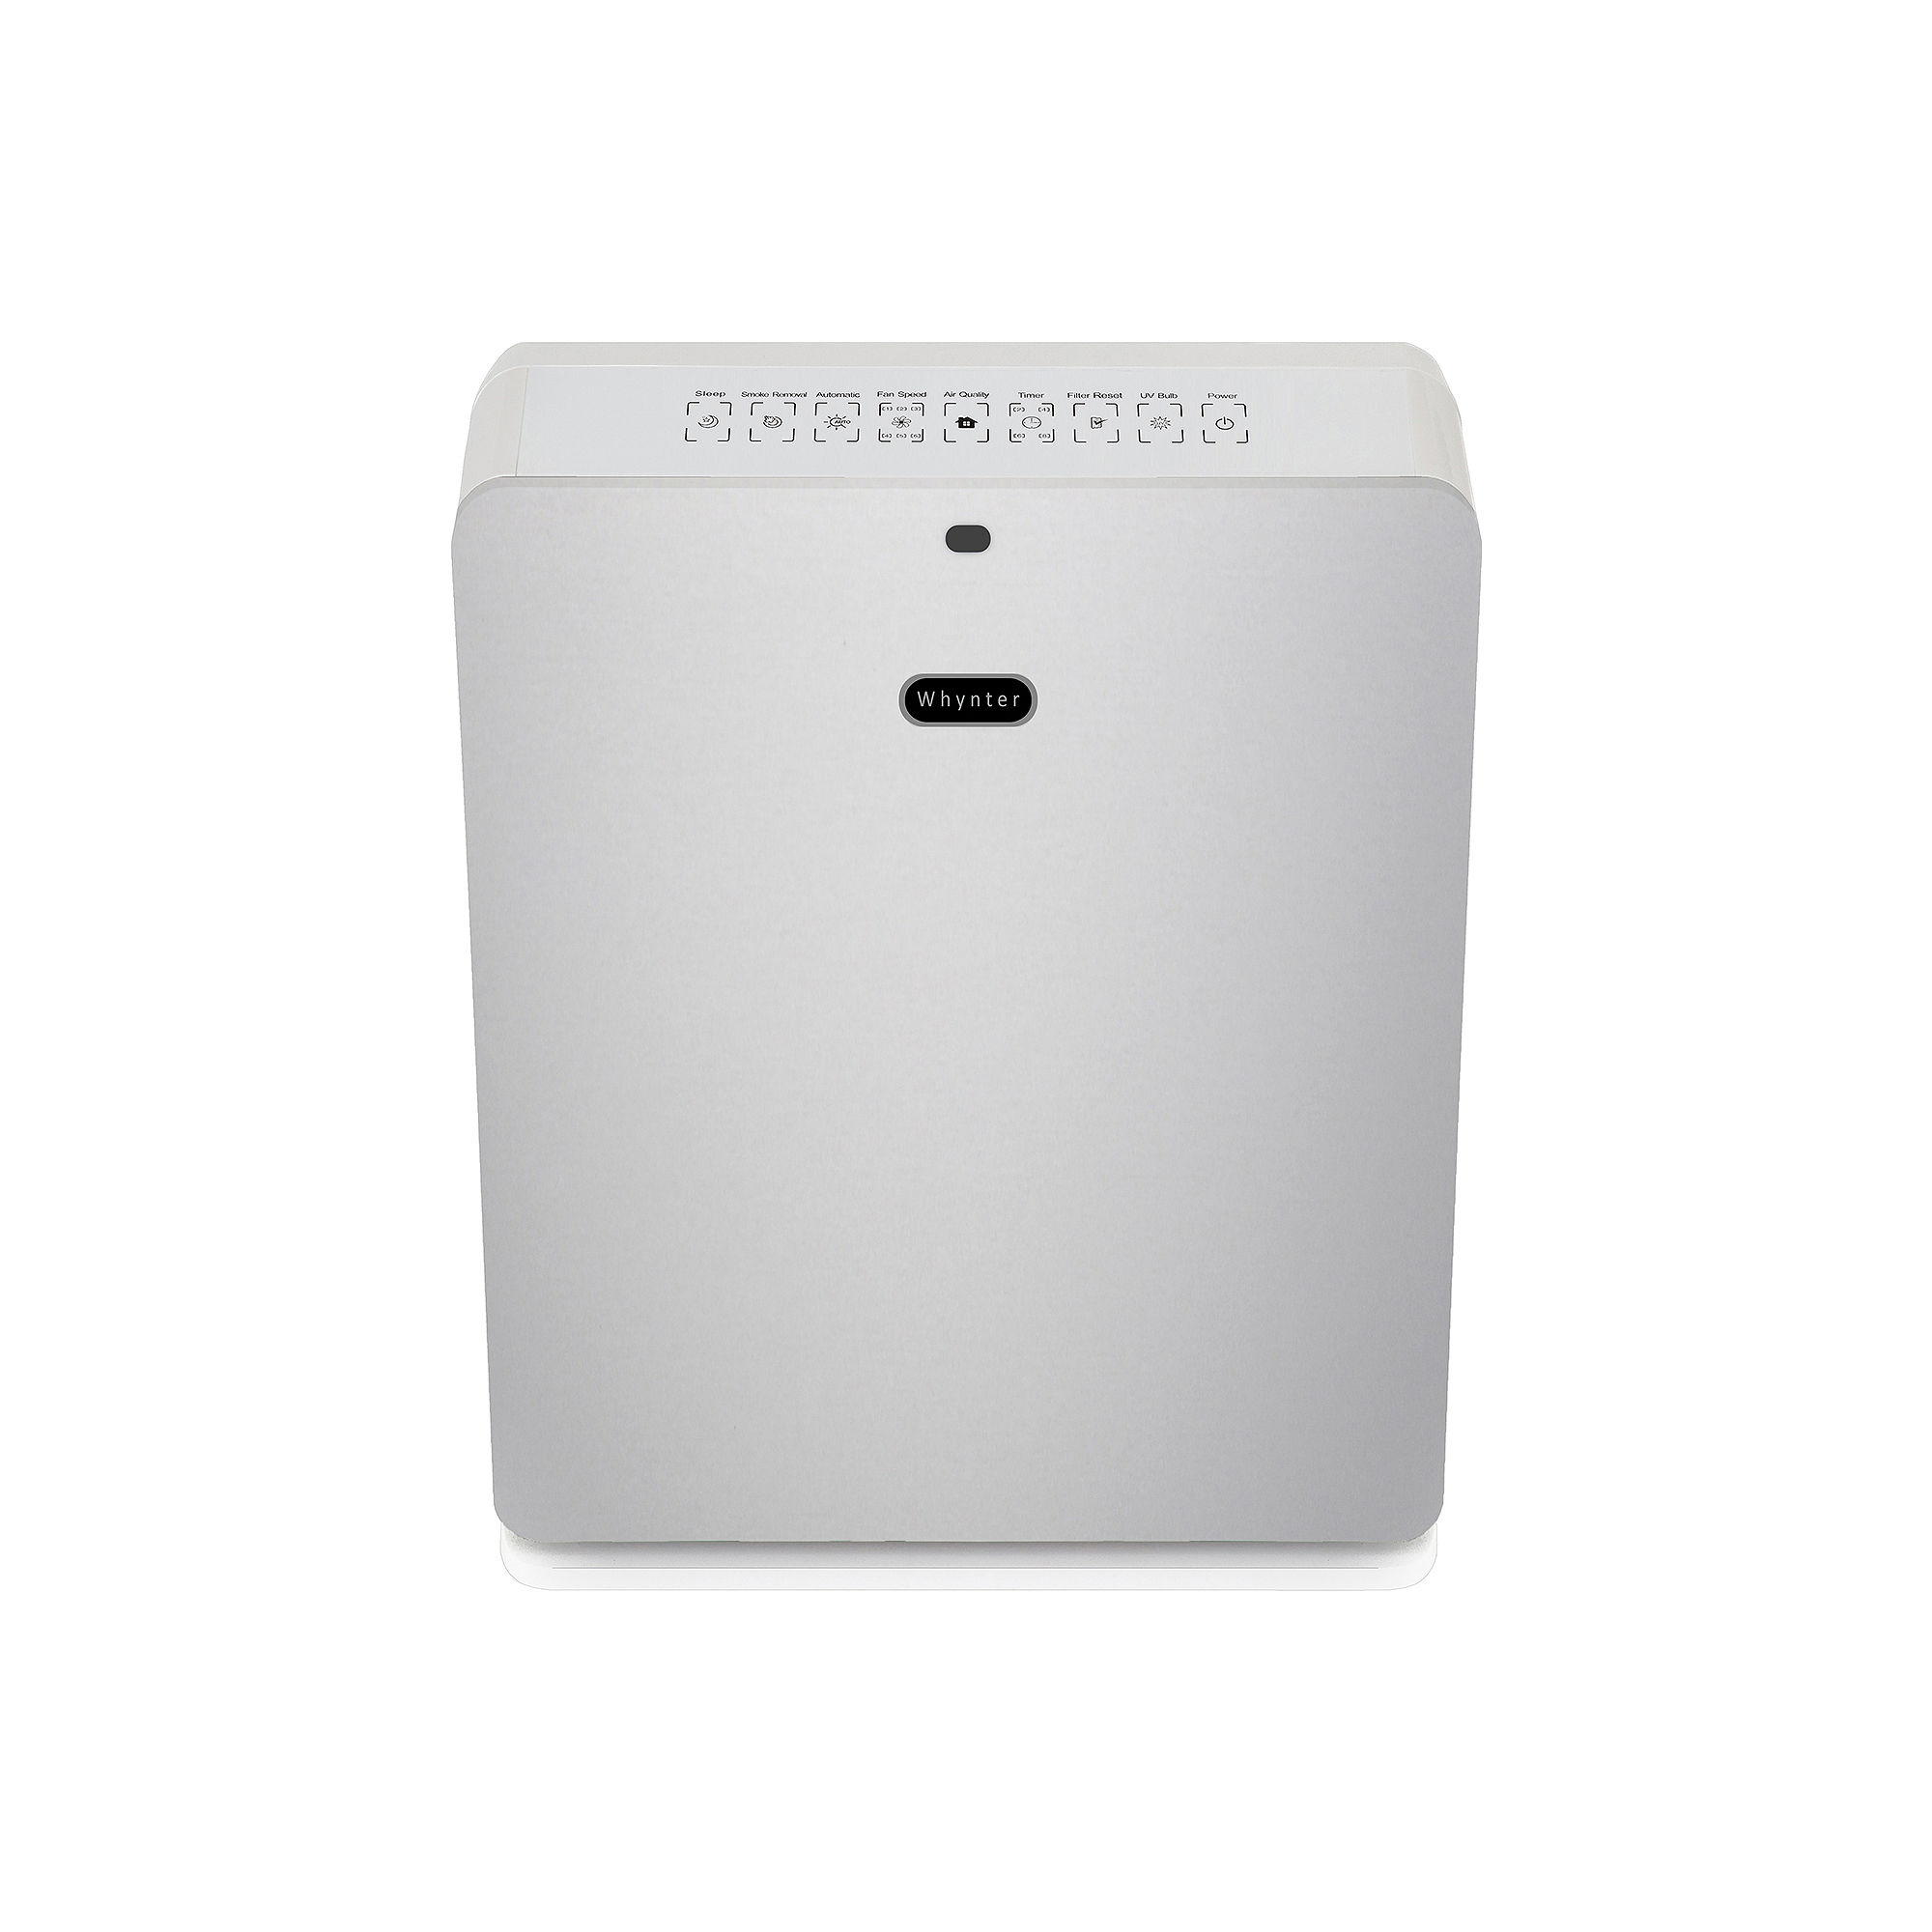 Whynter Afr-425-Sw Ecopure Hepa System Air Purifier